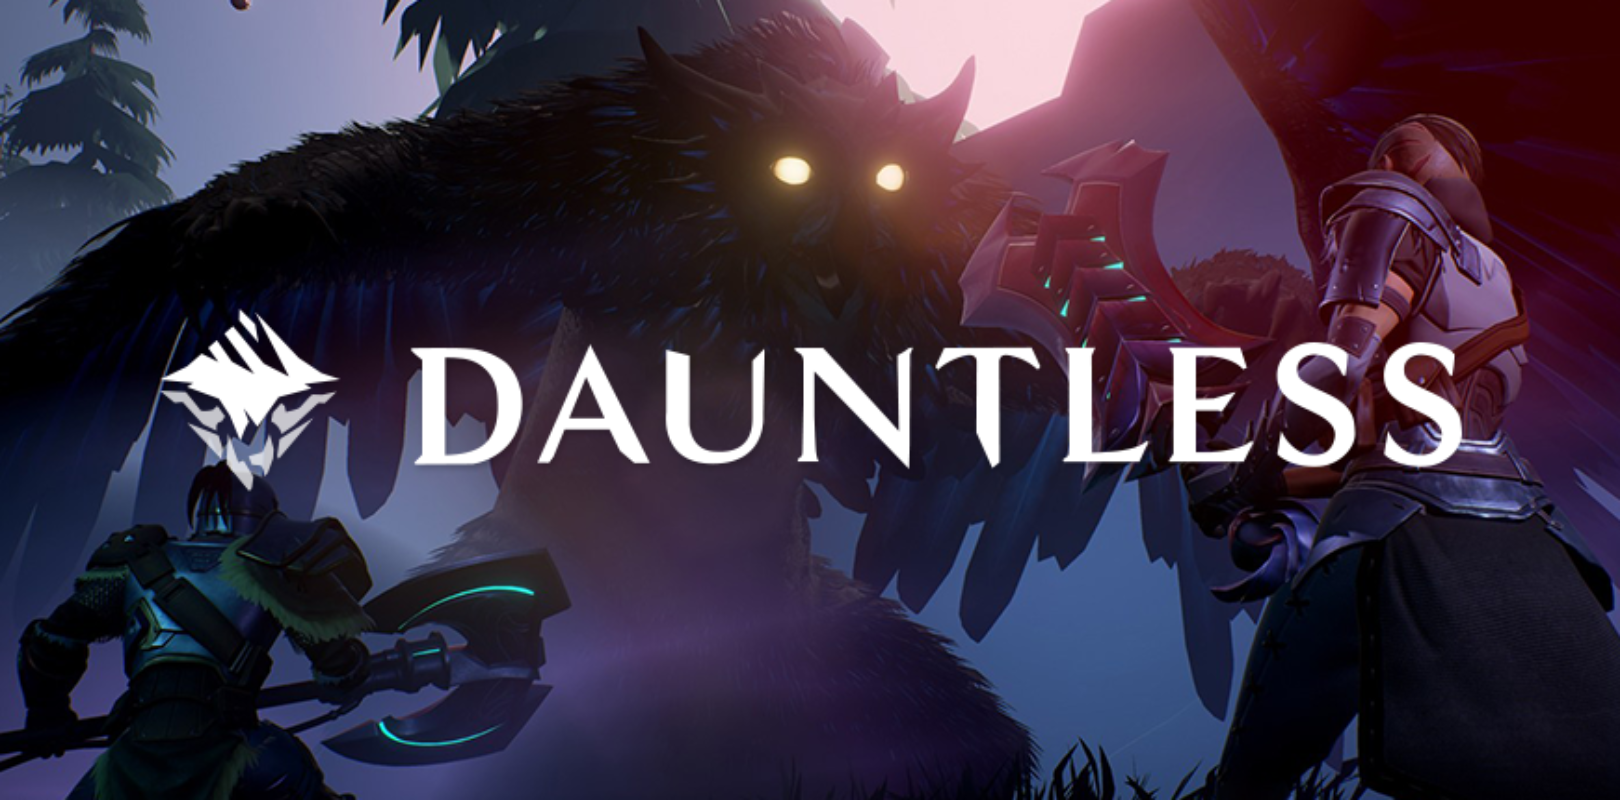 Dauntless Launches Today With Cross-Play on PlayStation 4, Xbox One